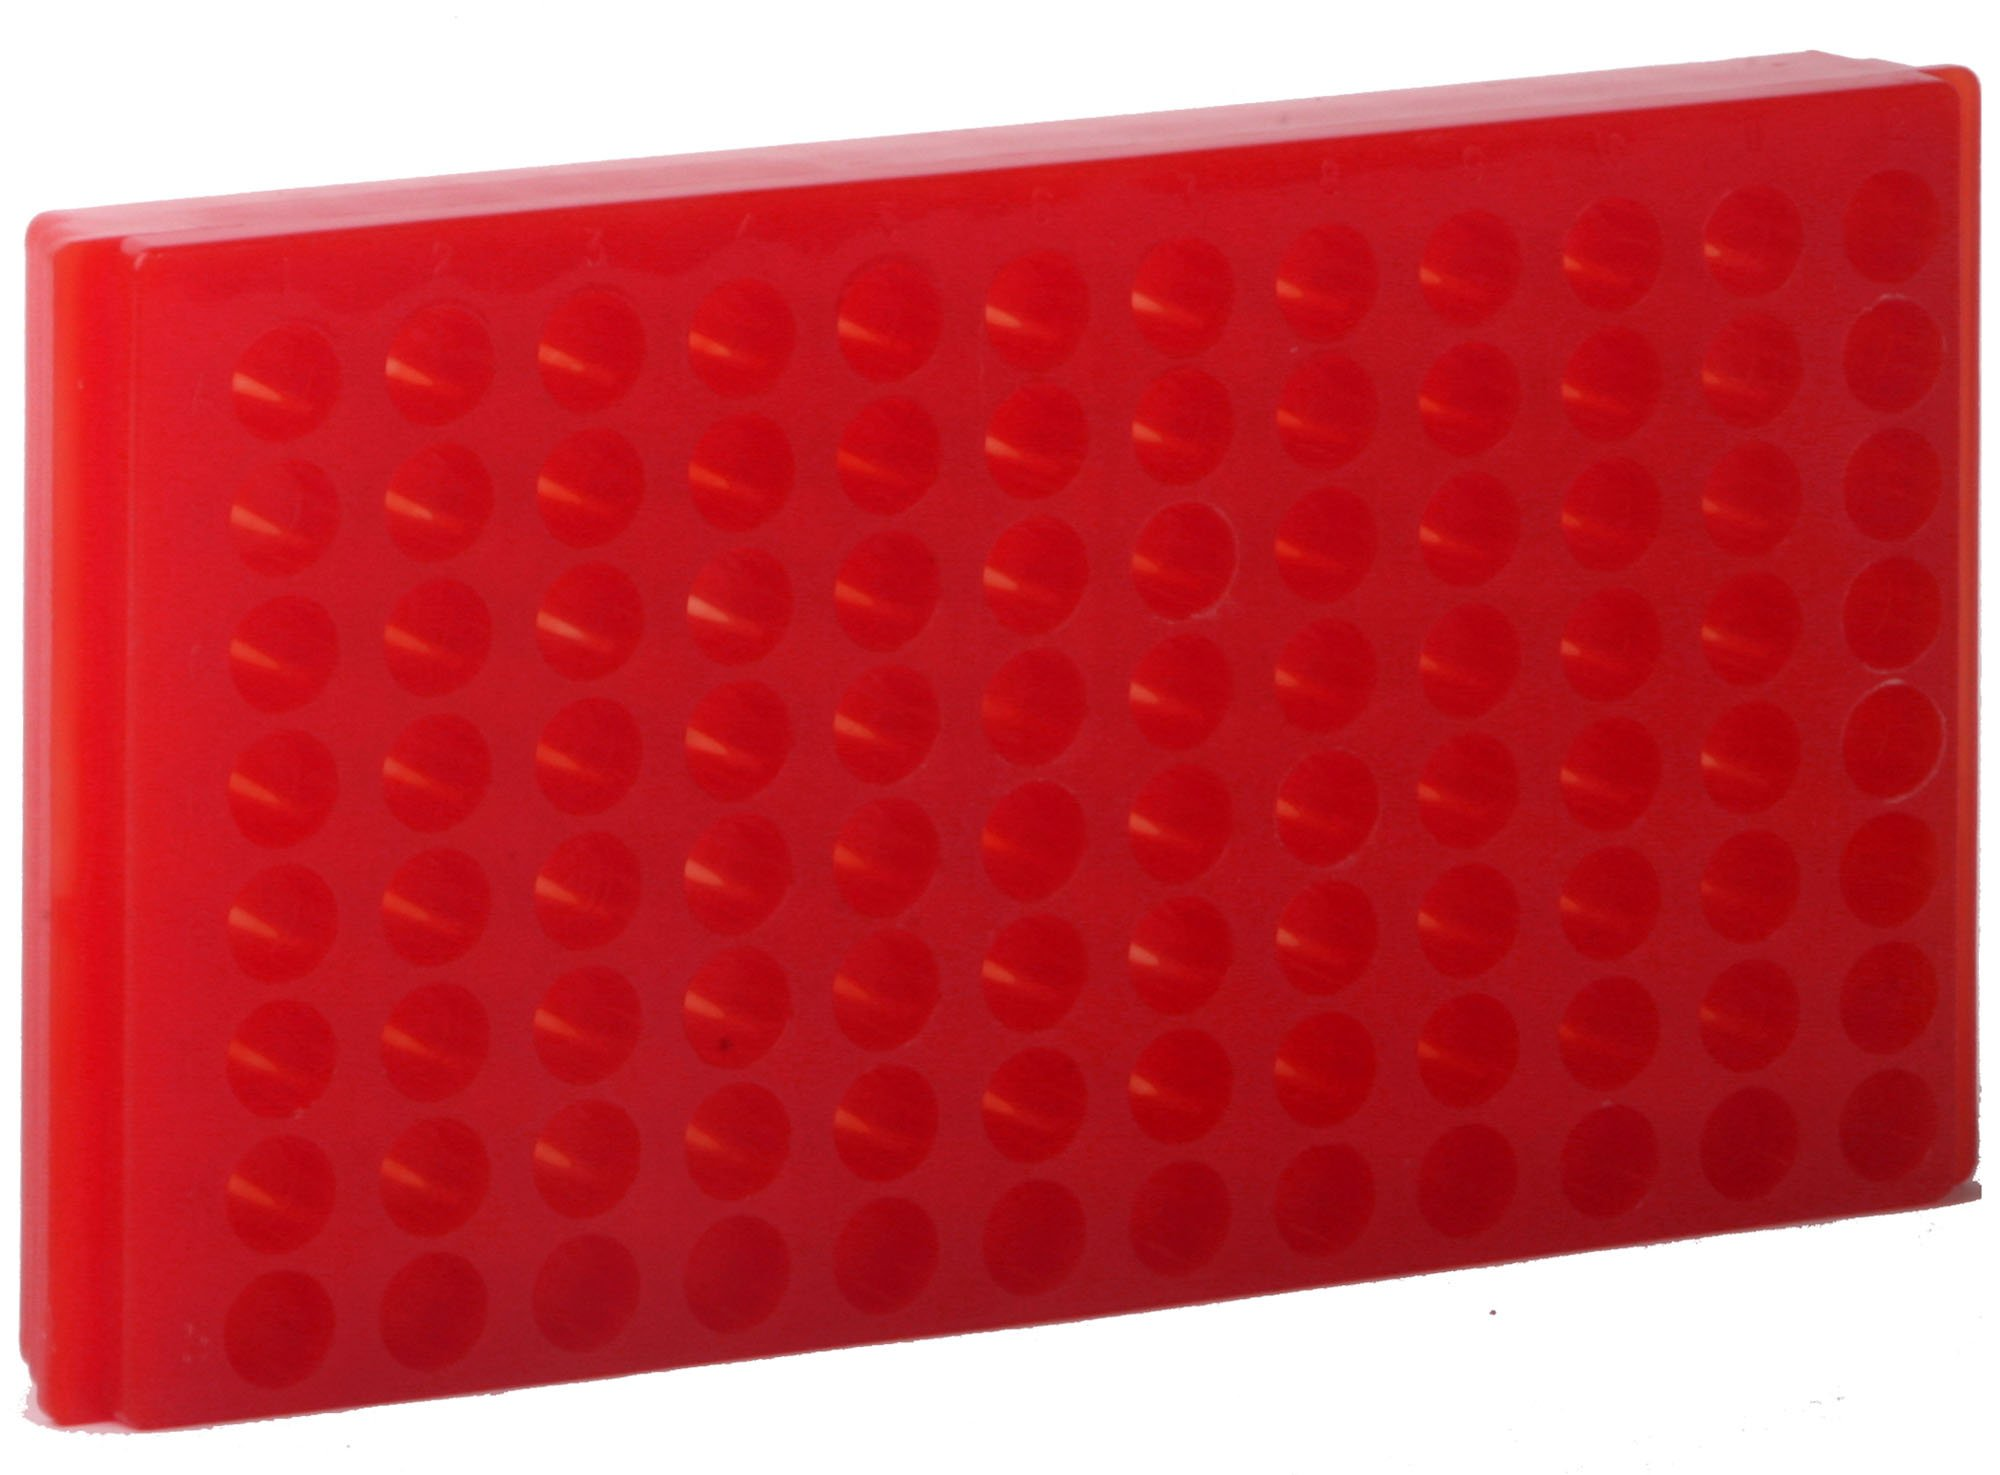 Autoclavable Assorted Pack of 5 Bio Plas 0091 Polypropylene 96 Well Reversible Microcentrifuge Tube Rack